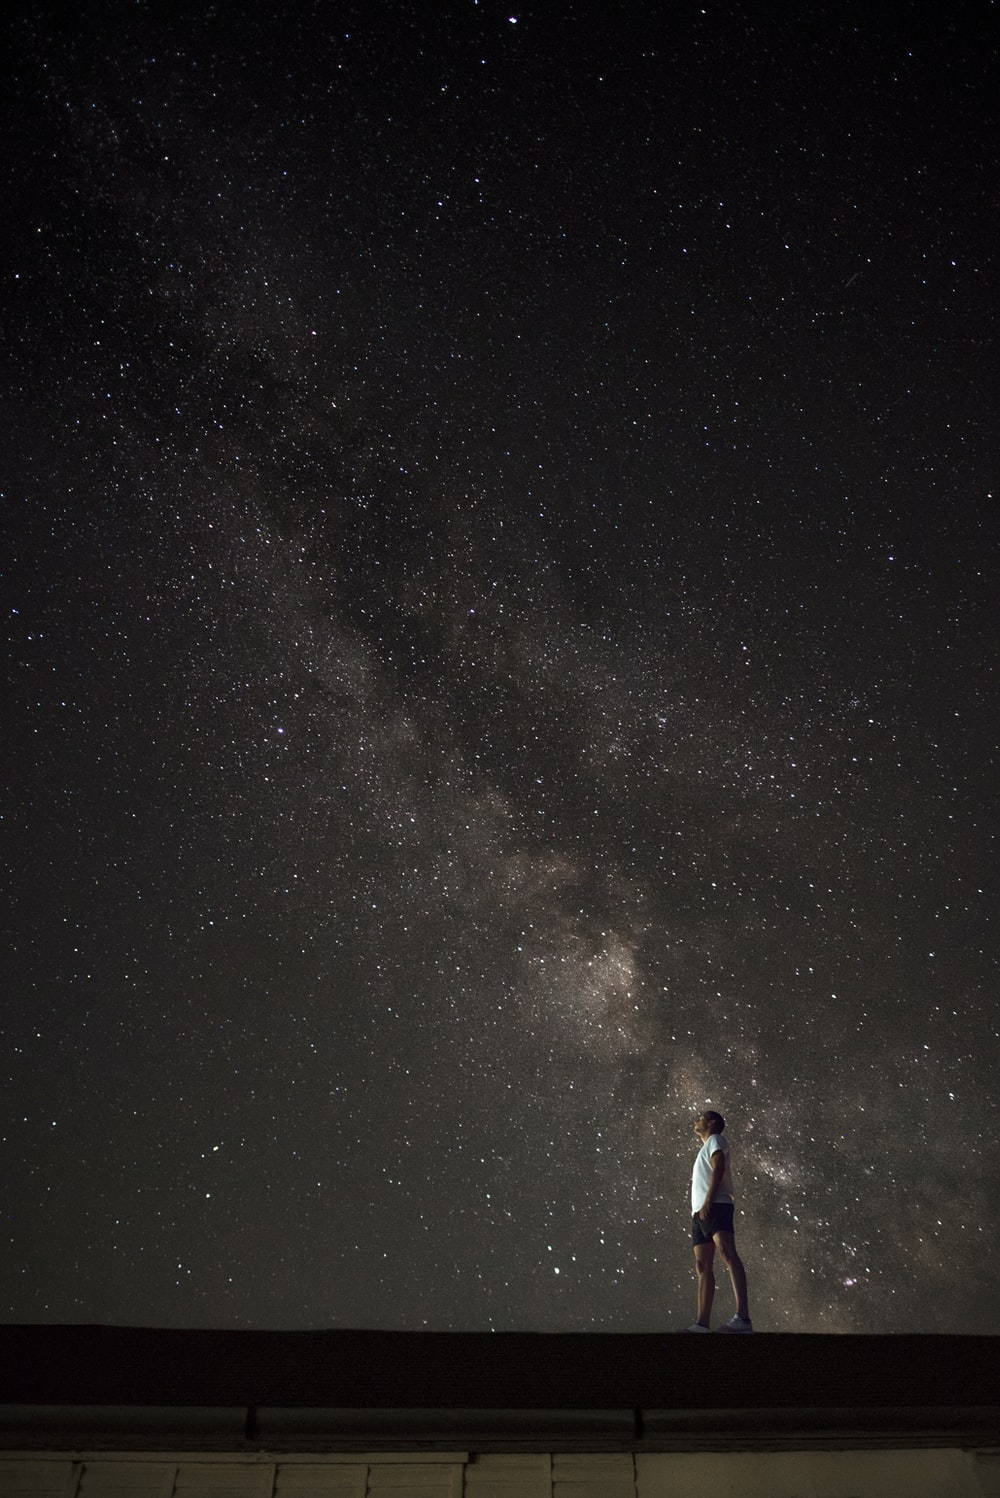 man looking up to Milky Way galaxy at night sky